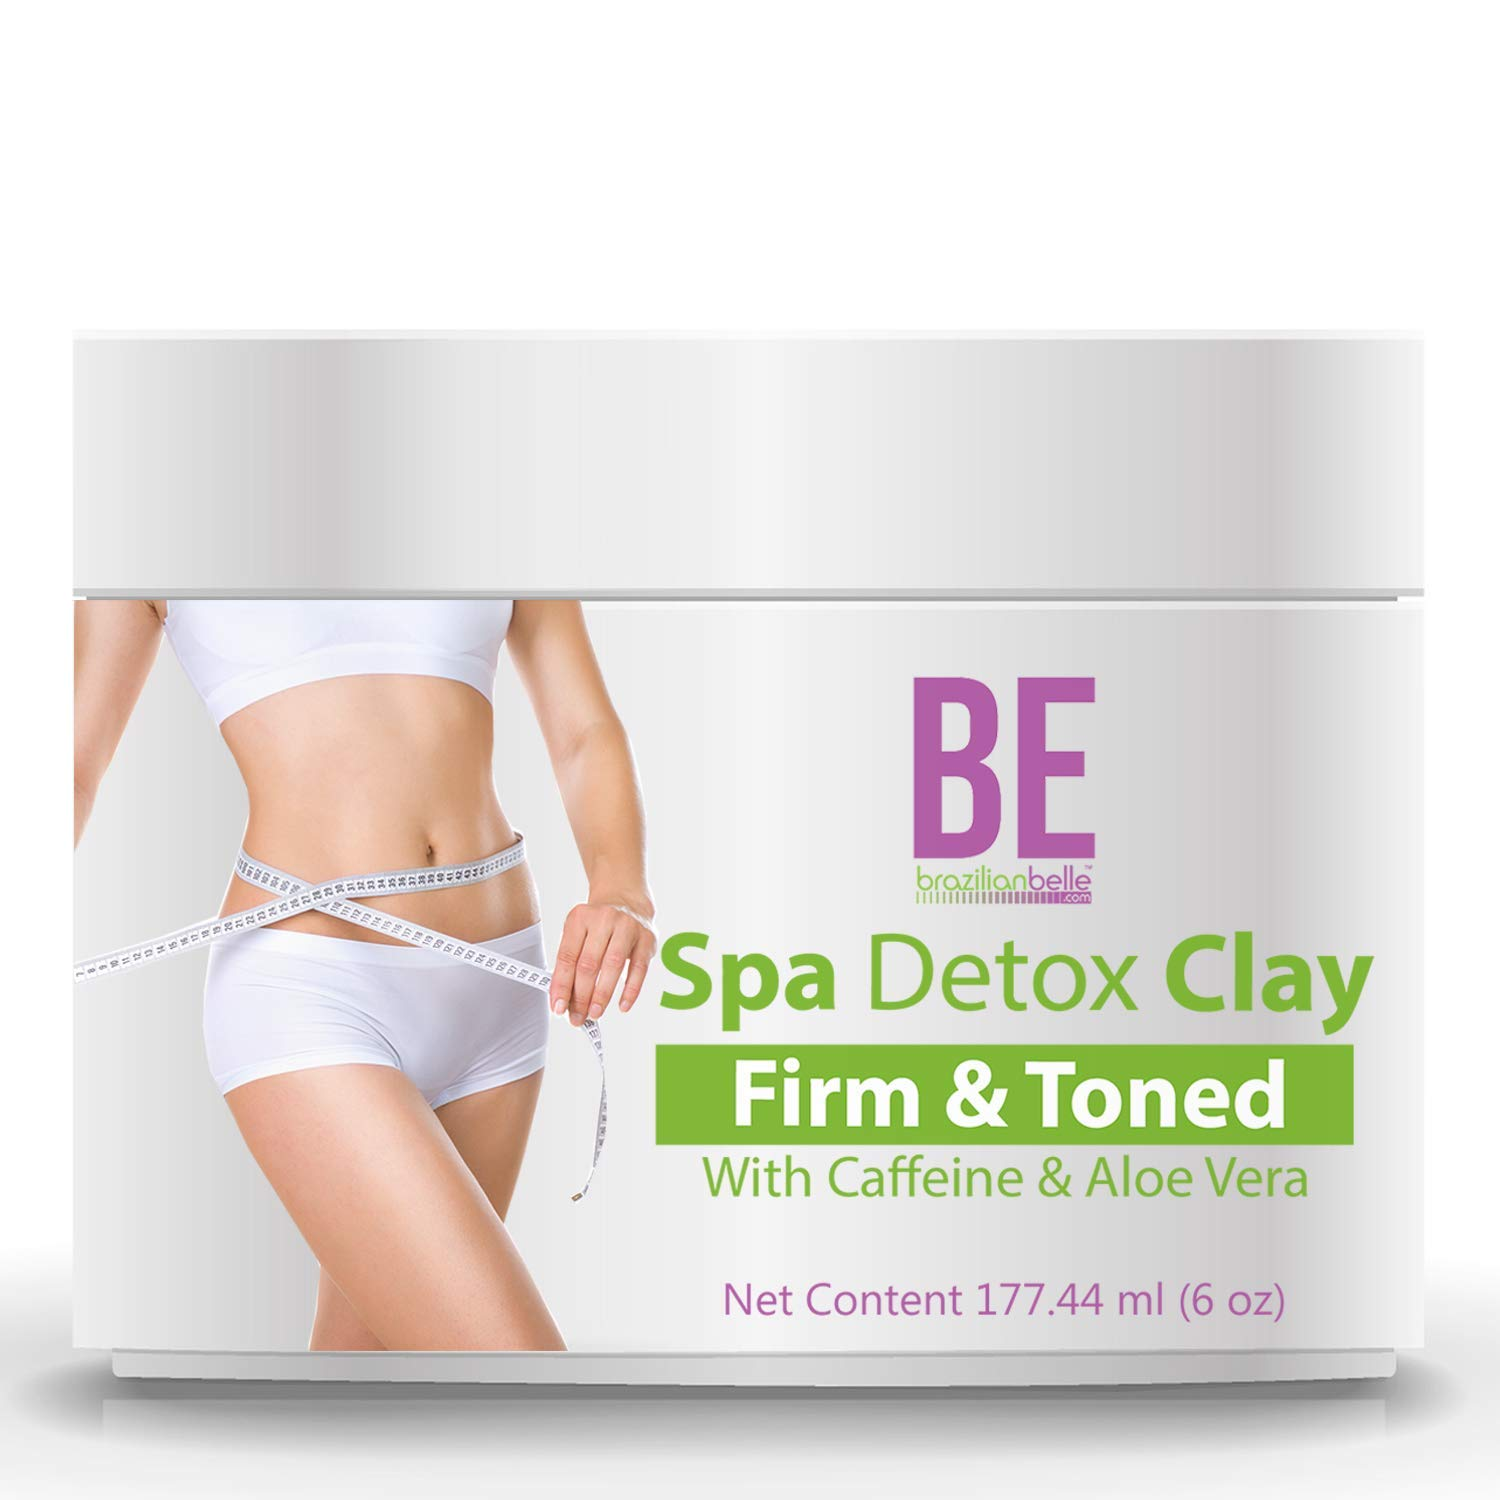 Brazilian Spa Detox Body Clay for Inch Loss Body Wraps, Detox and Cleanse -Rejuvenate and Improves Skin Texture- All Natural Ingredients - 6 oz : Beauty